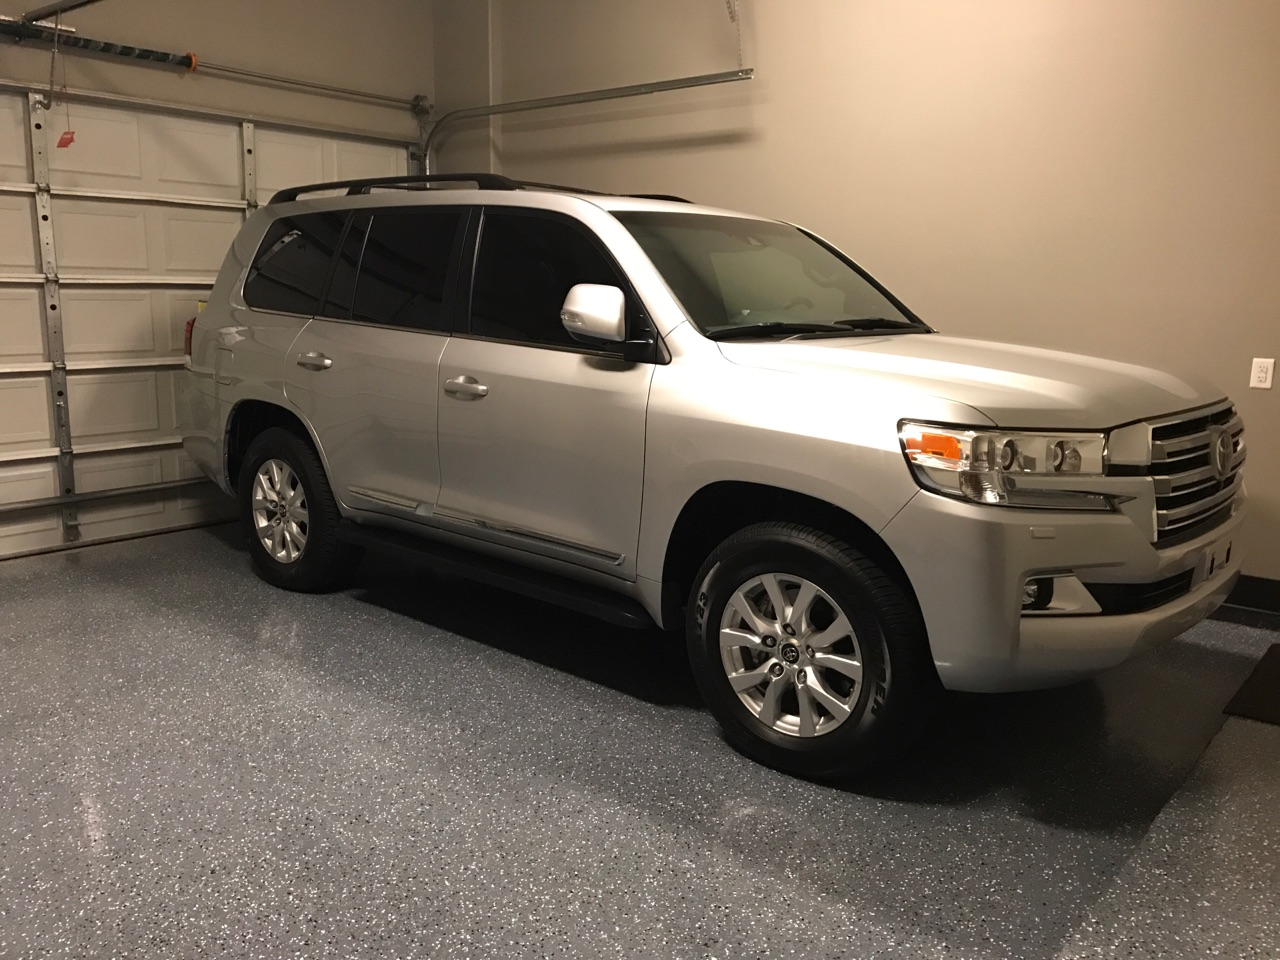 Pics Of The New 2017 Toyota Landcruiser Lc200 Build